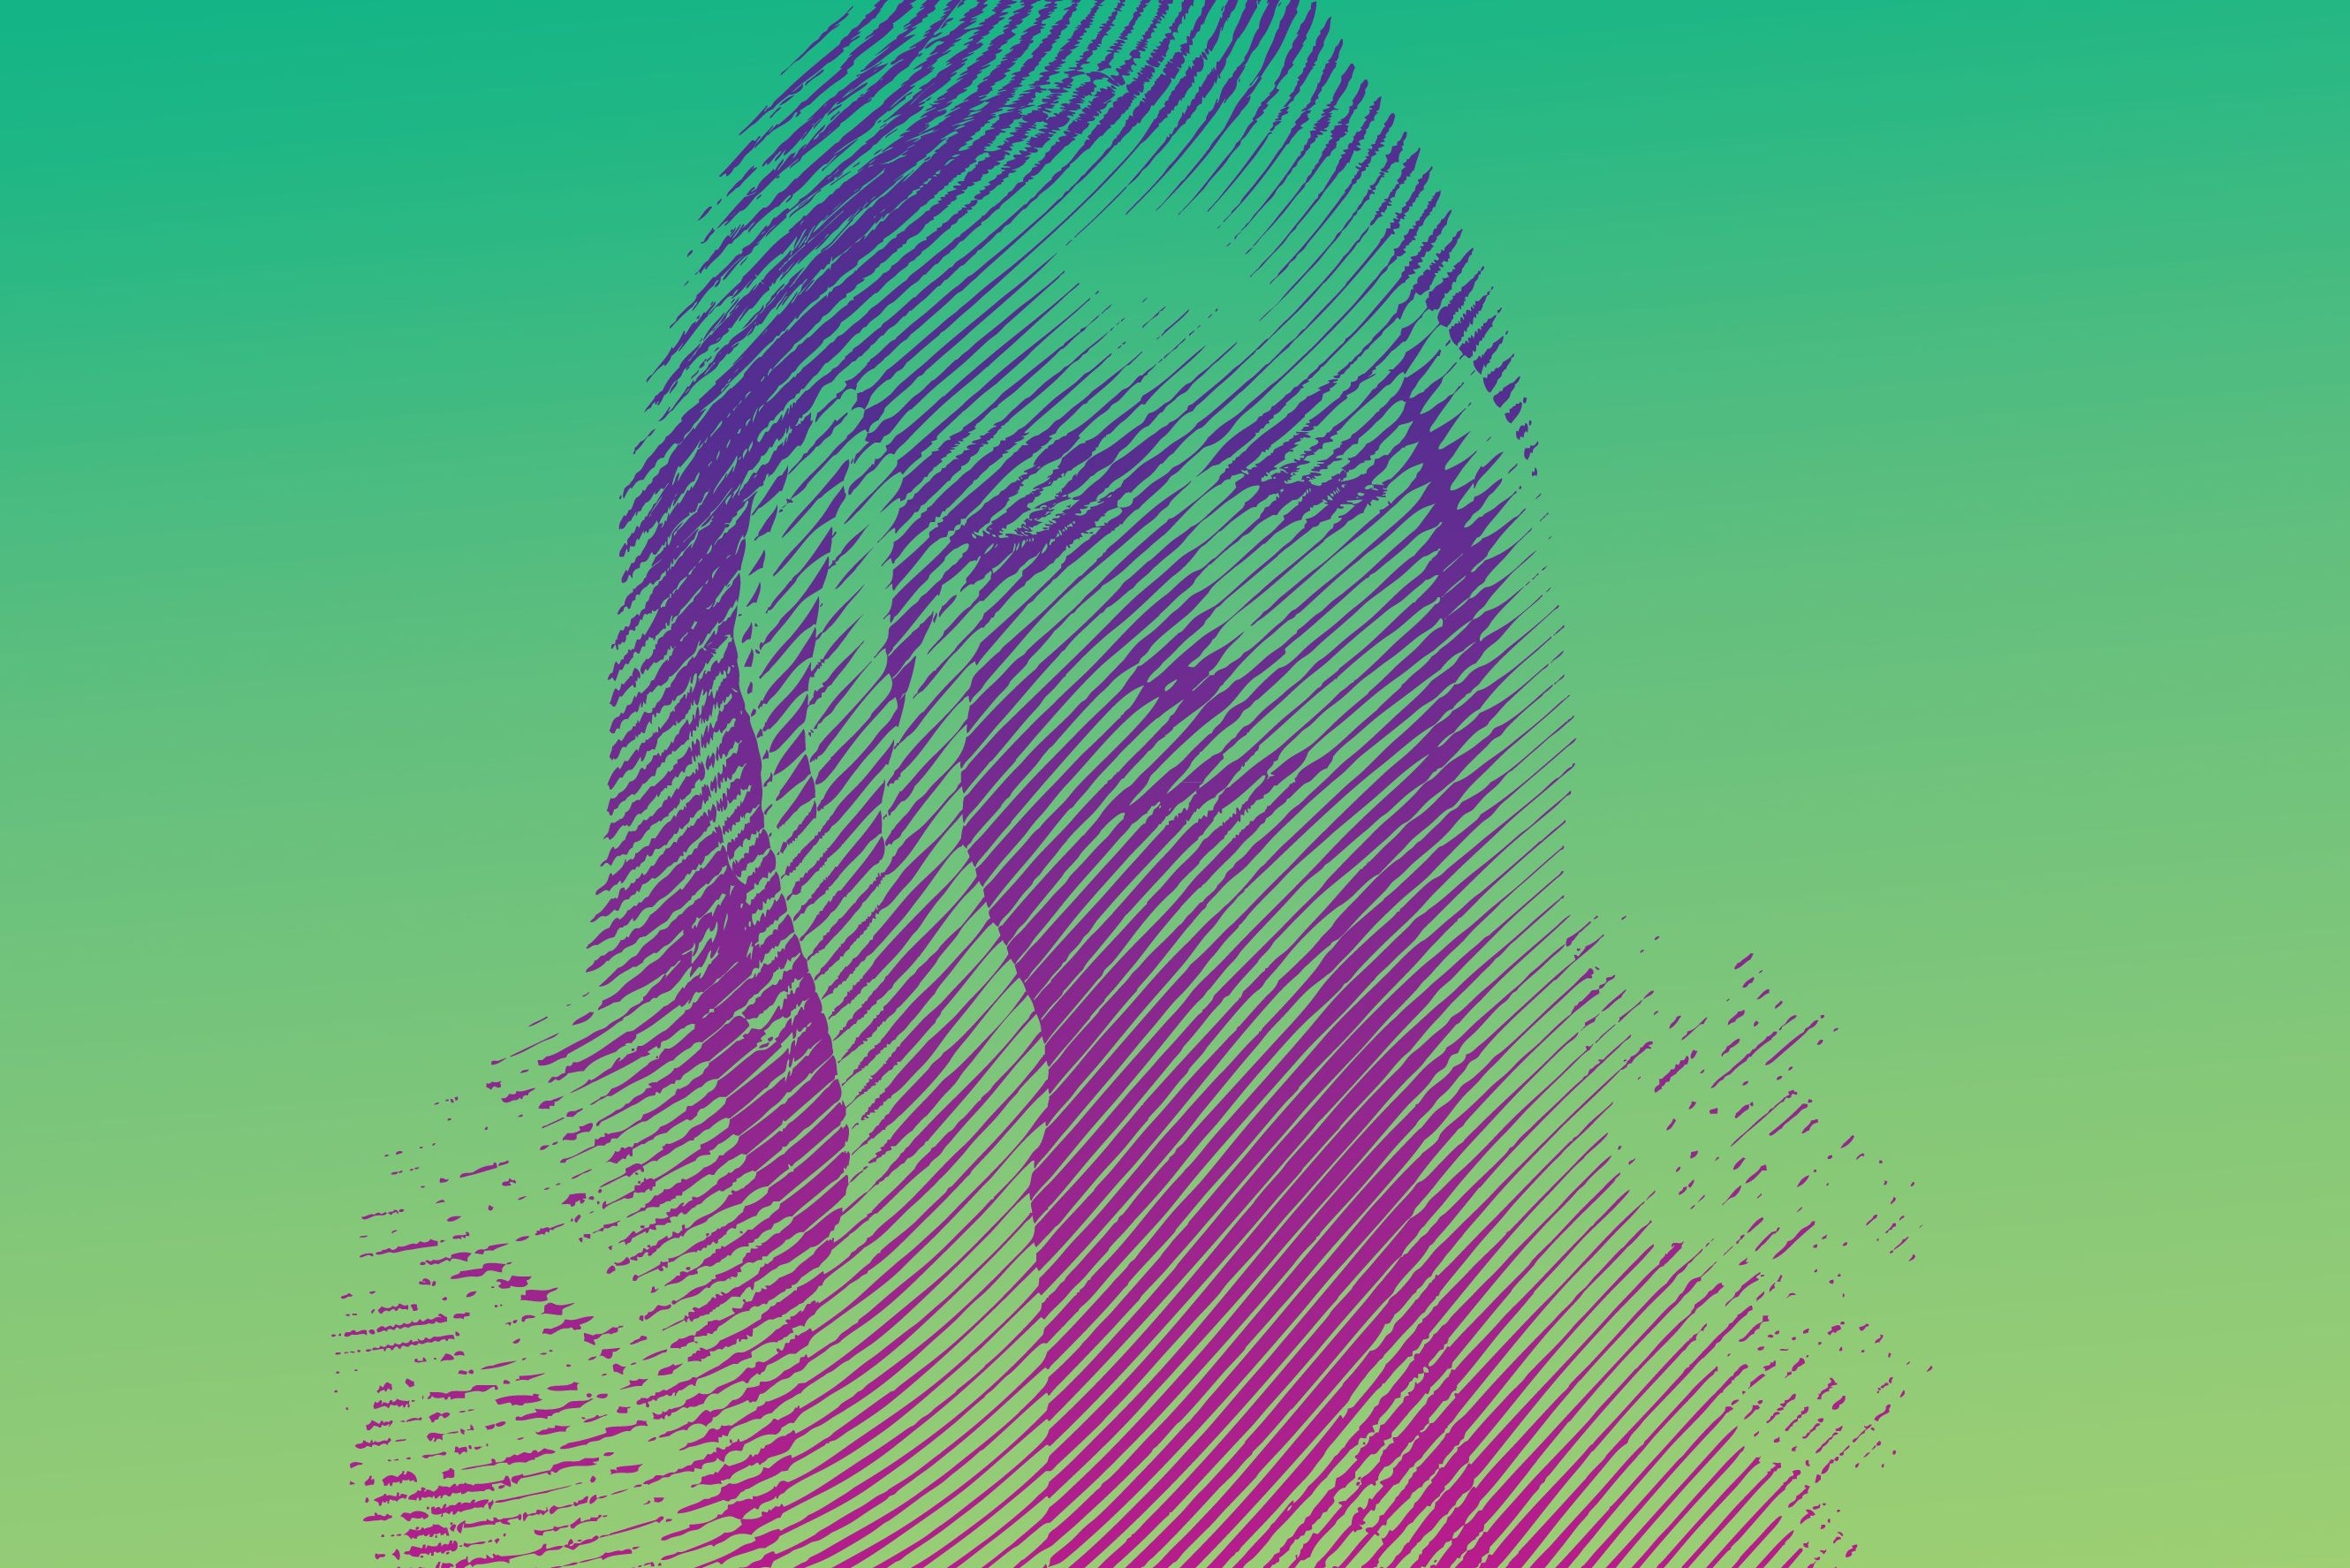 How to Spot 7 Types of Migraines